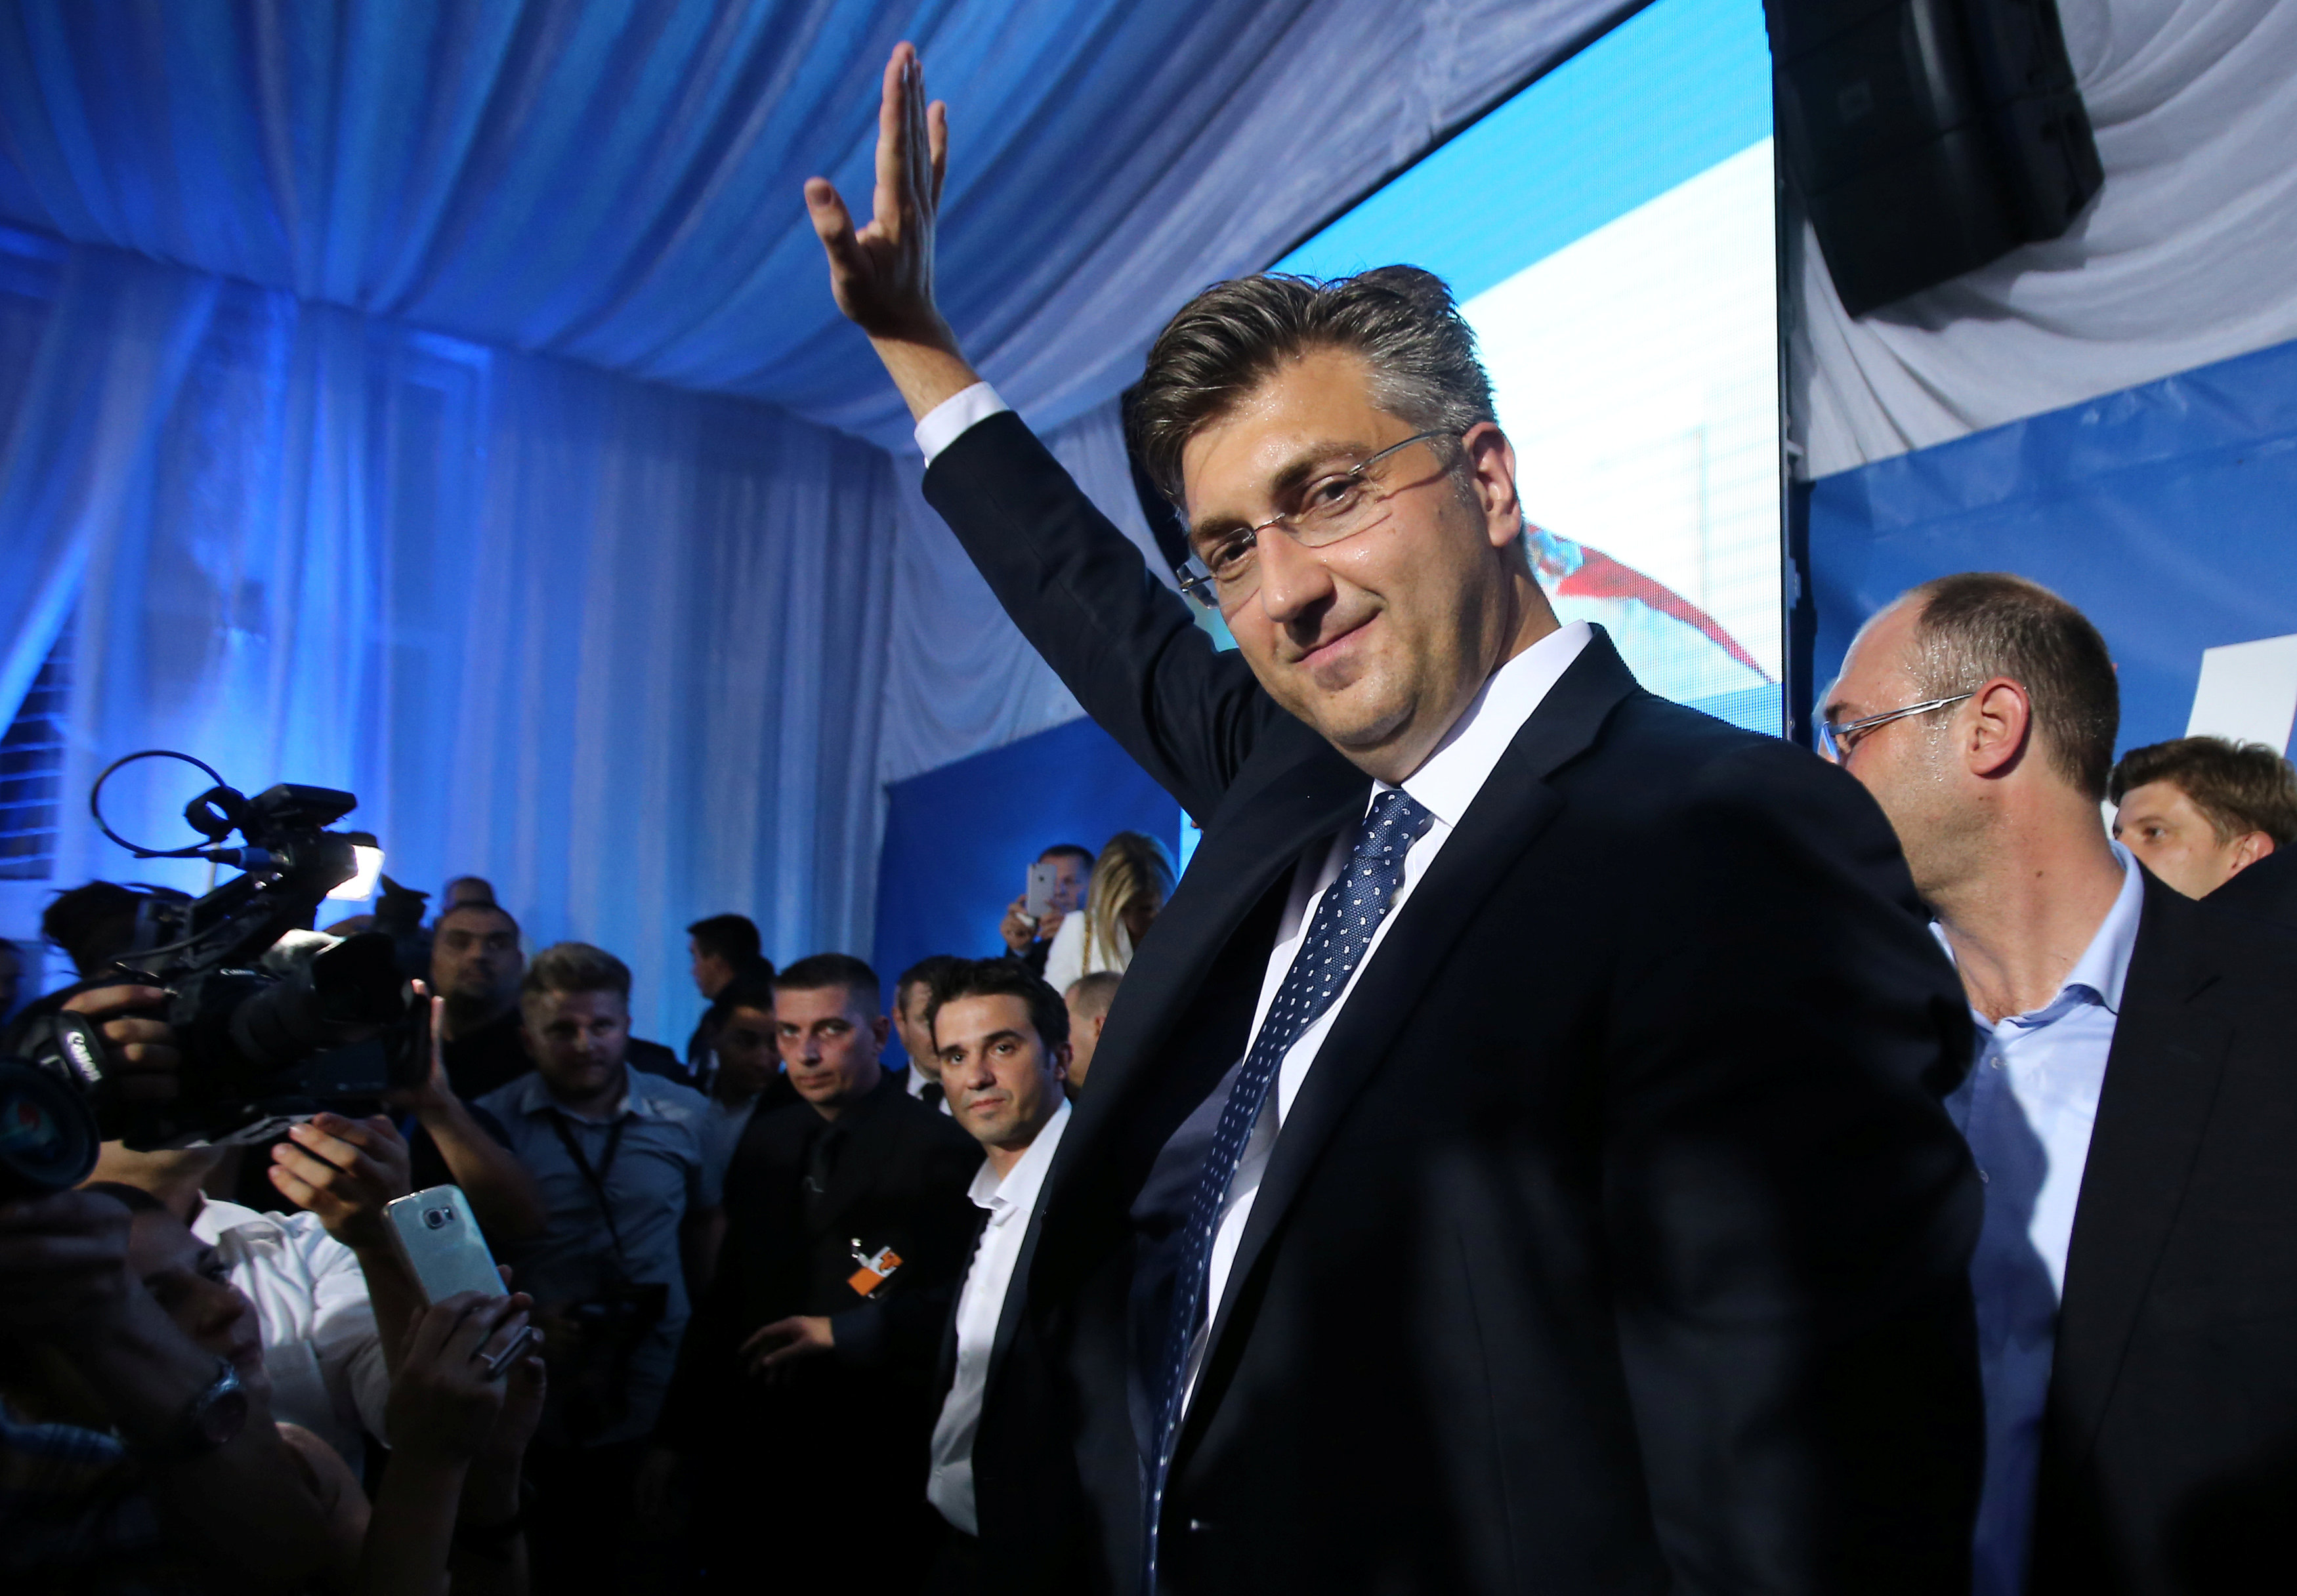 Andrej Plenkovic, president of the Croatian Democratic Union (HDZ), reacts during a speech after exit polls in Zagreb, Croatia, September 11, 2016.